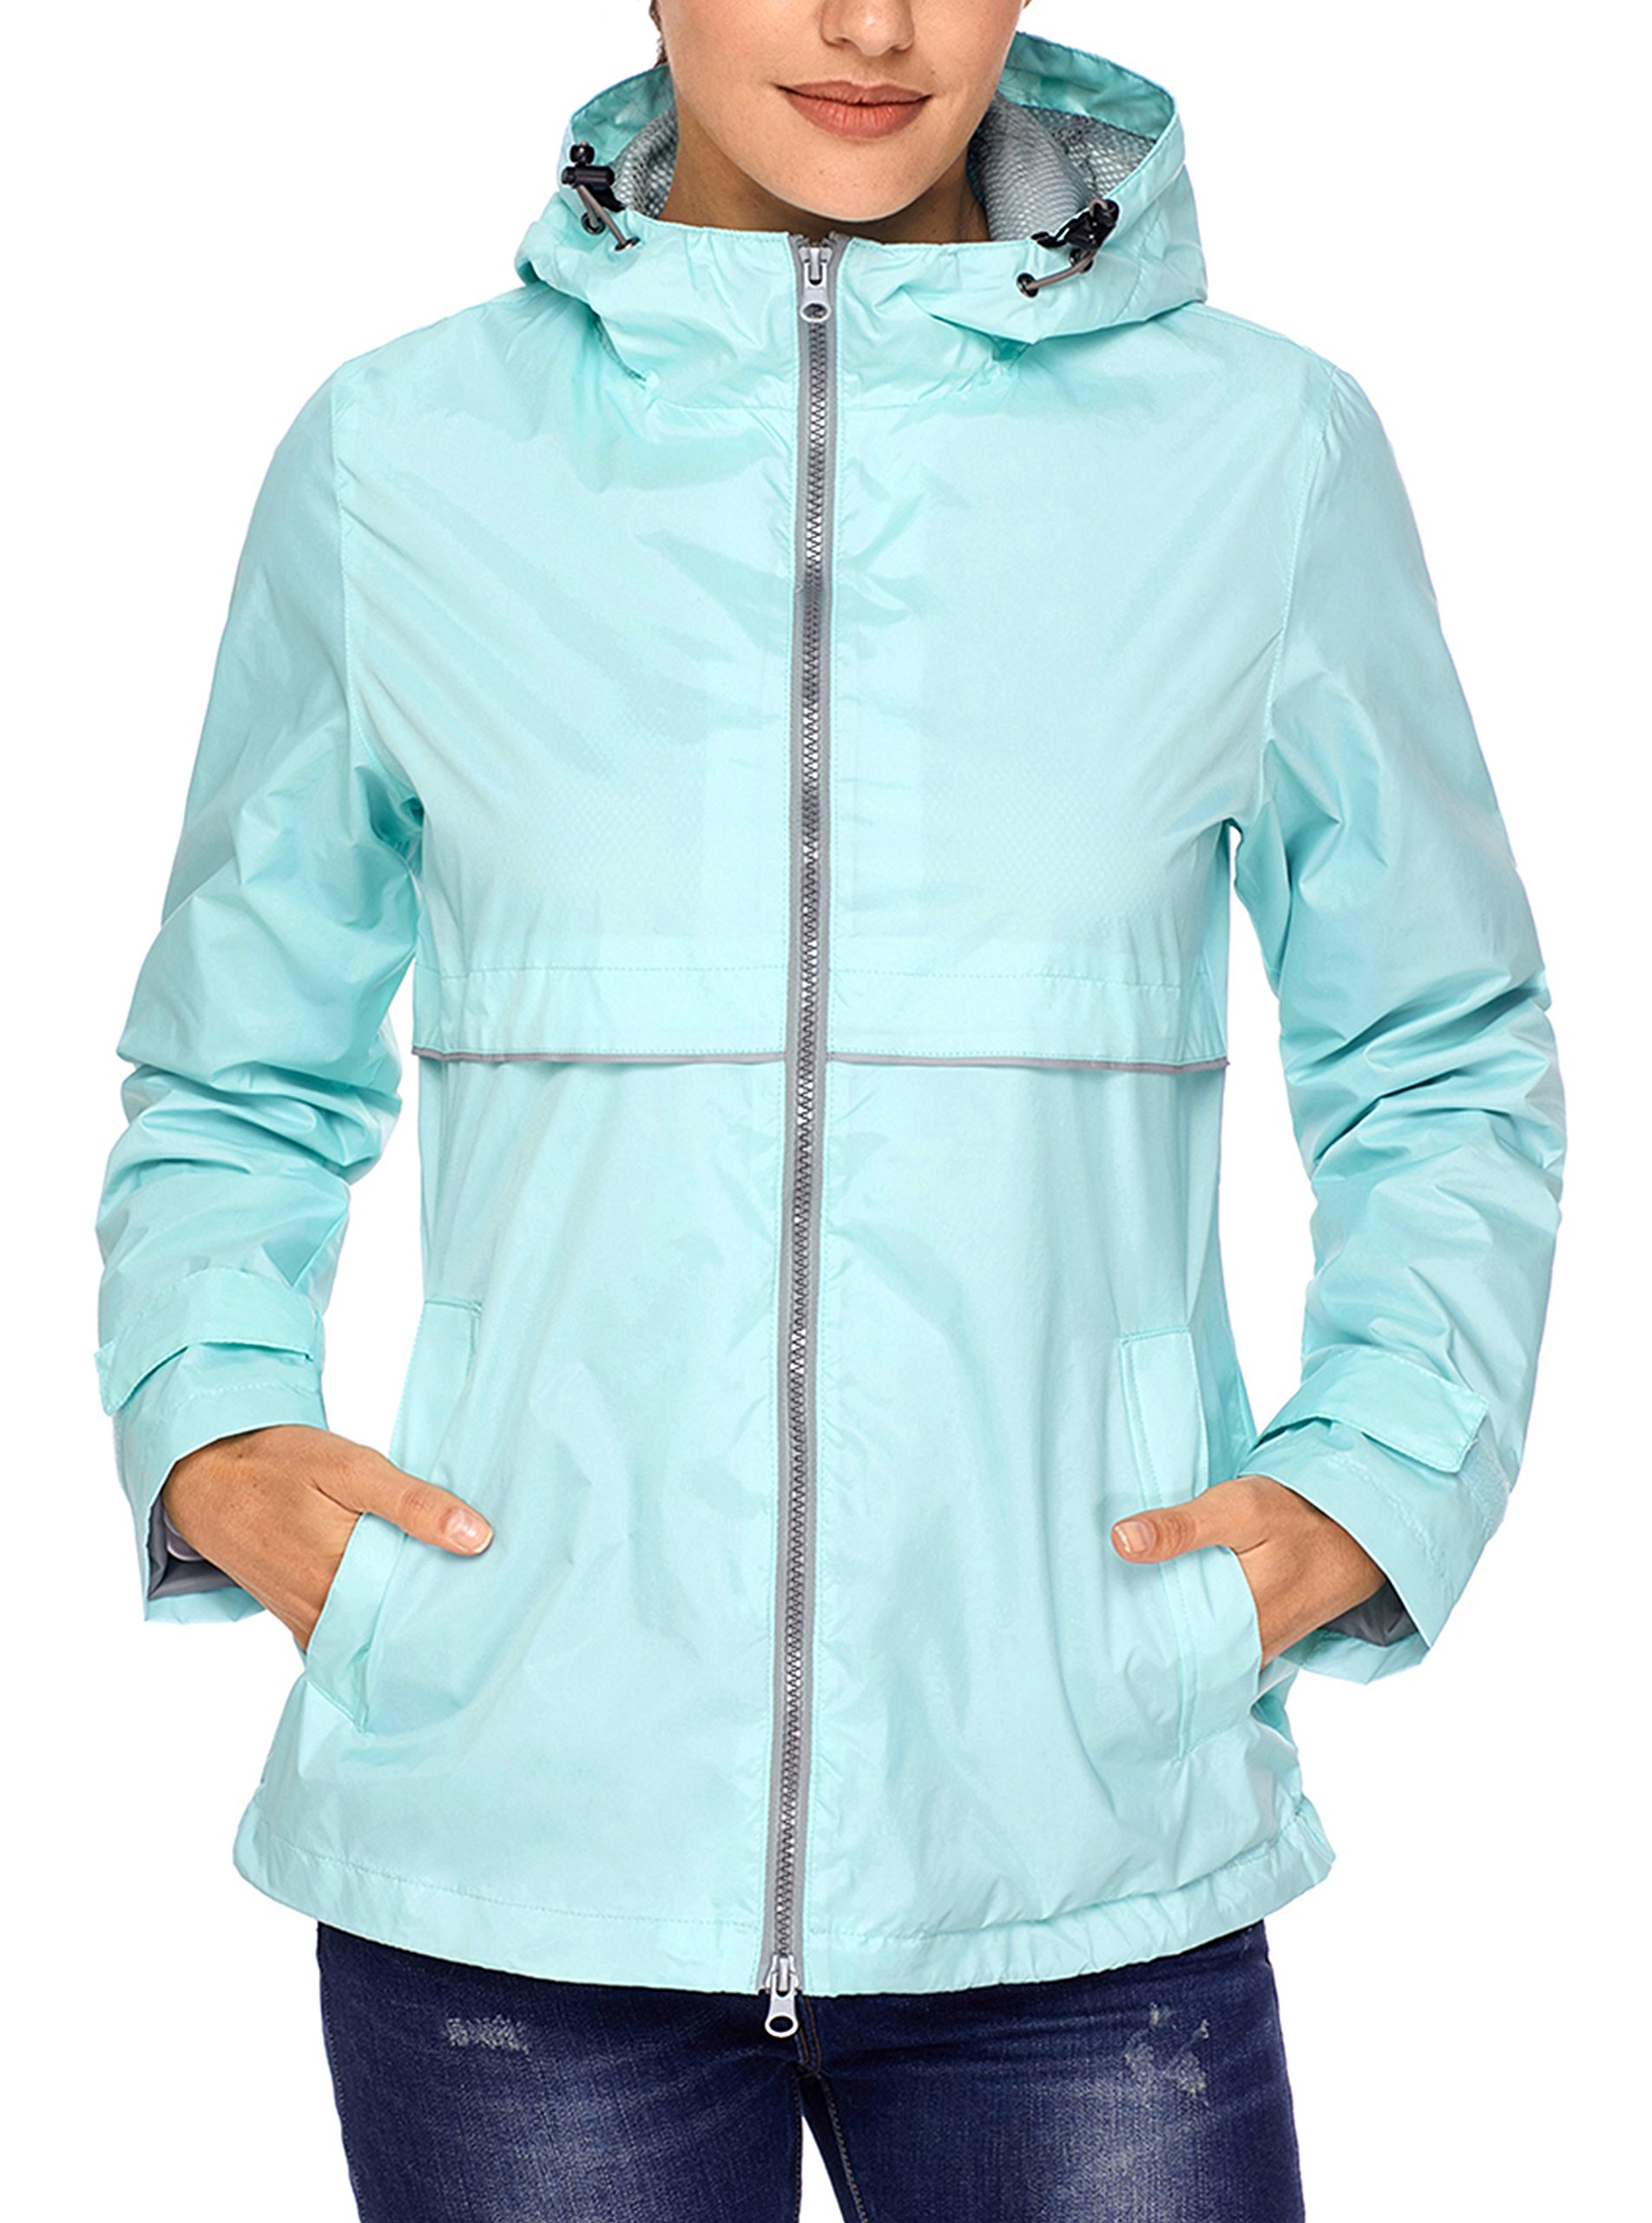 77c14e73bad SWISSWELL Womens  Waterproof Lightweight Raincoat Hooded Outdoor Hiking  Long Rain Jacket Light MintLarge